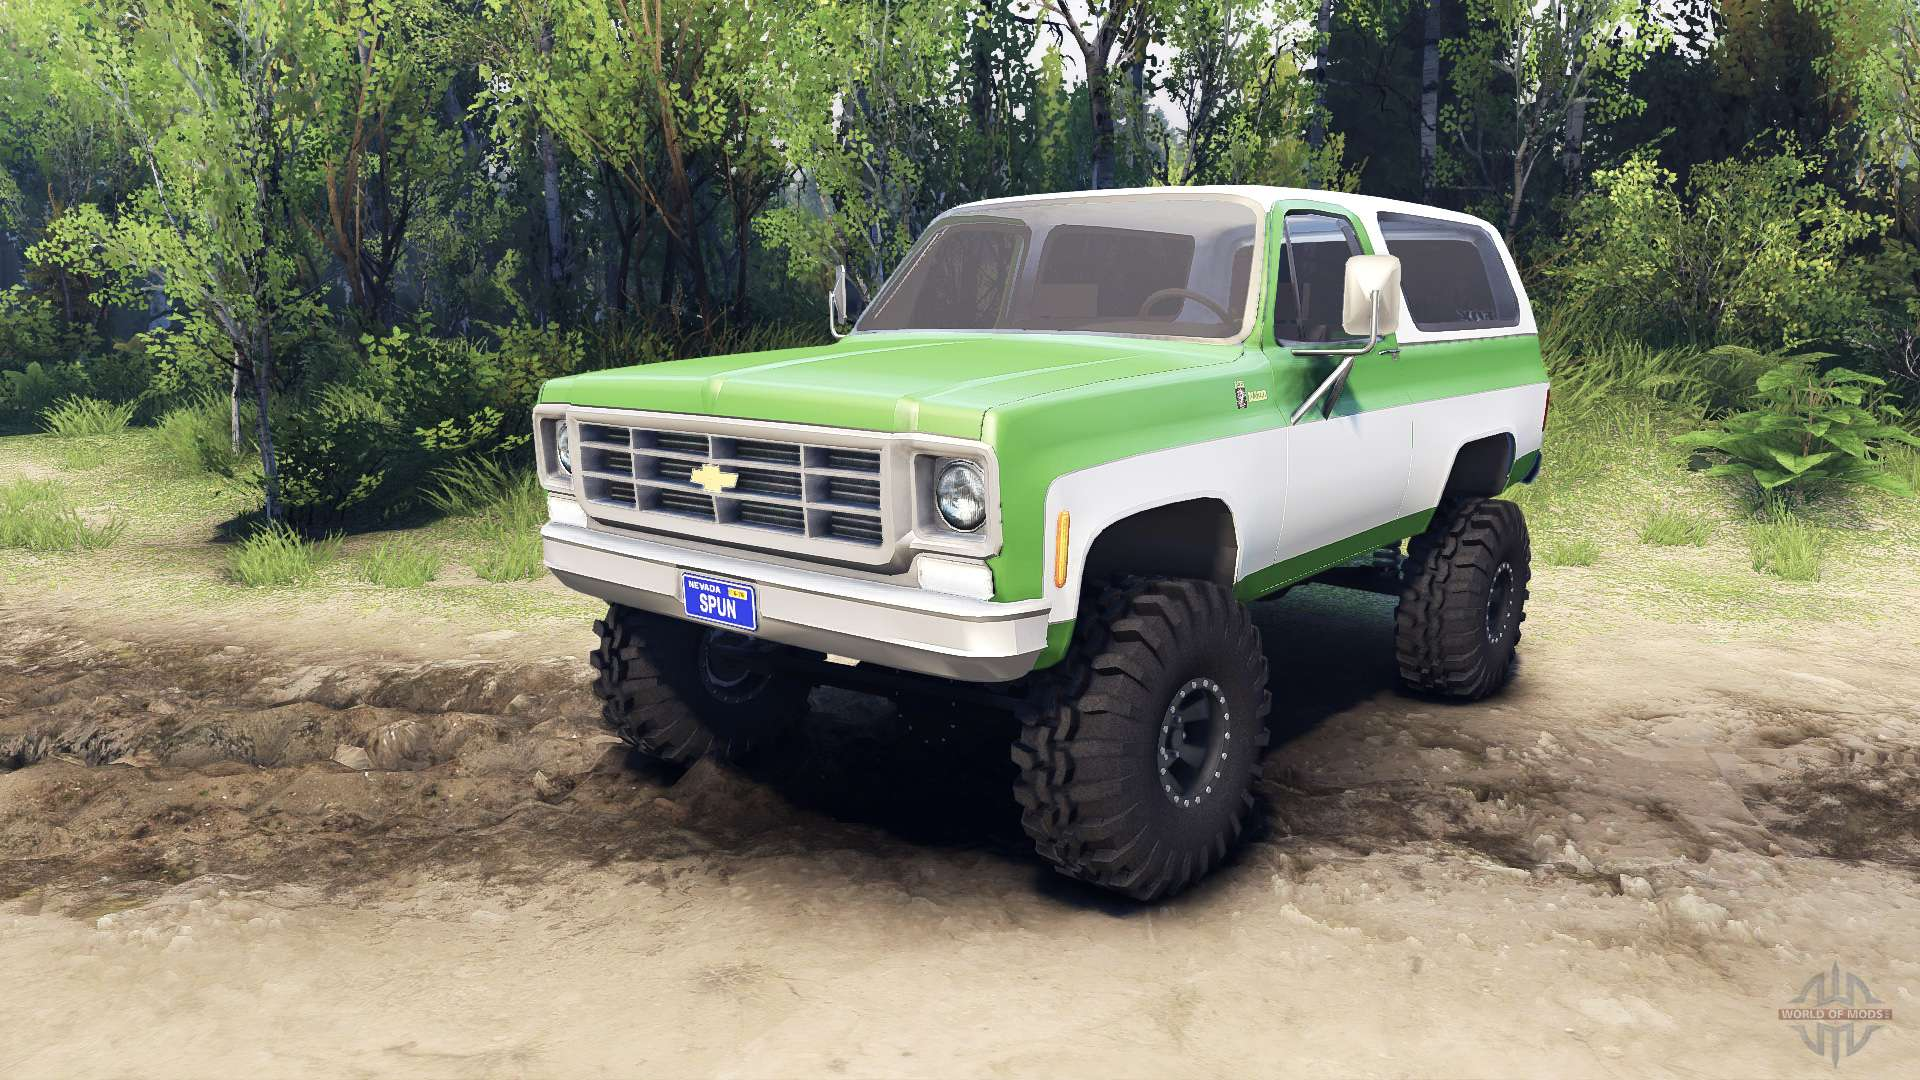 Chevy Blazer 2015 >> Chevrolet K5 Blazer 1975 green and white for Spin Tires